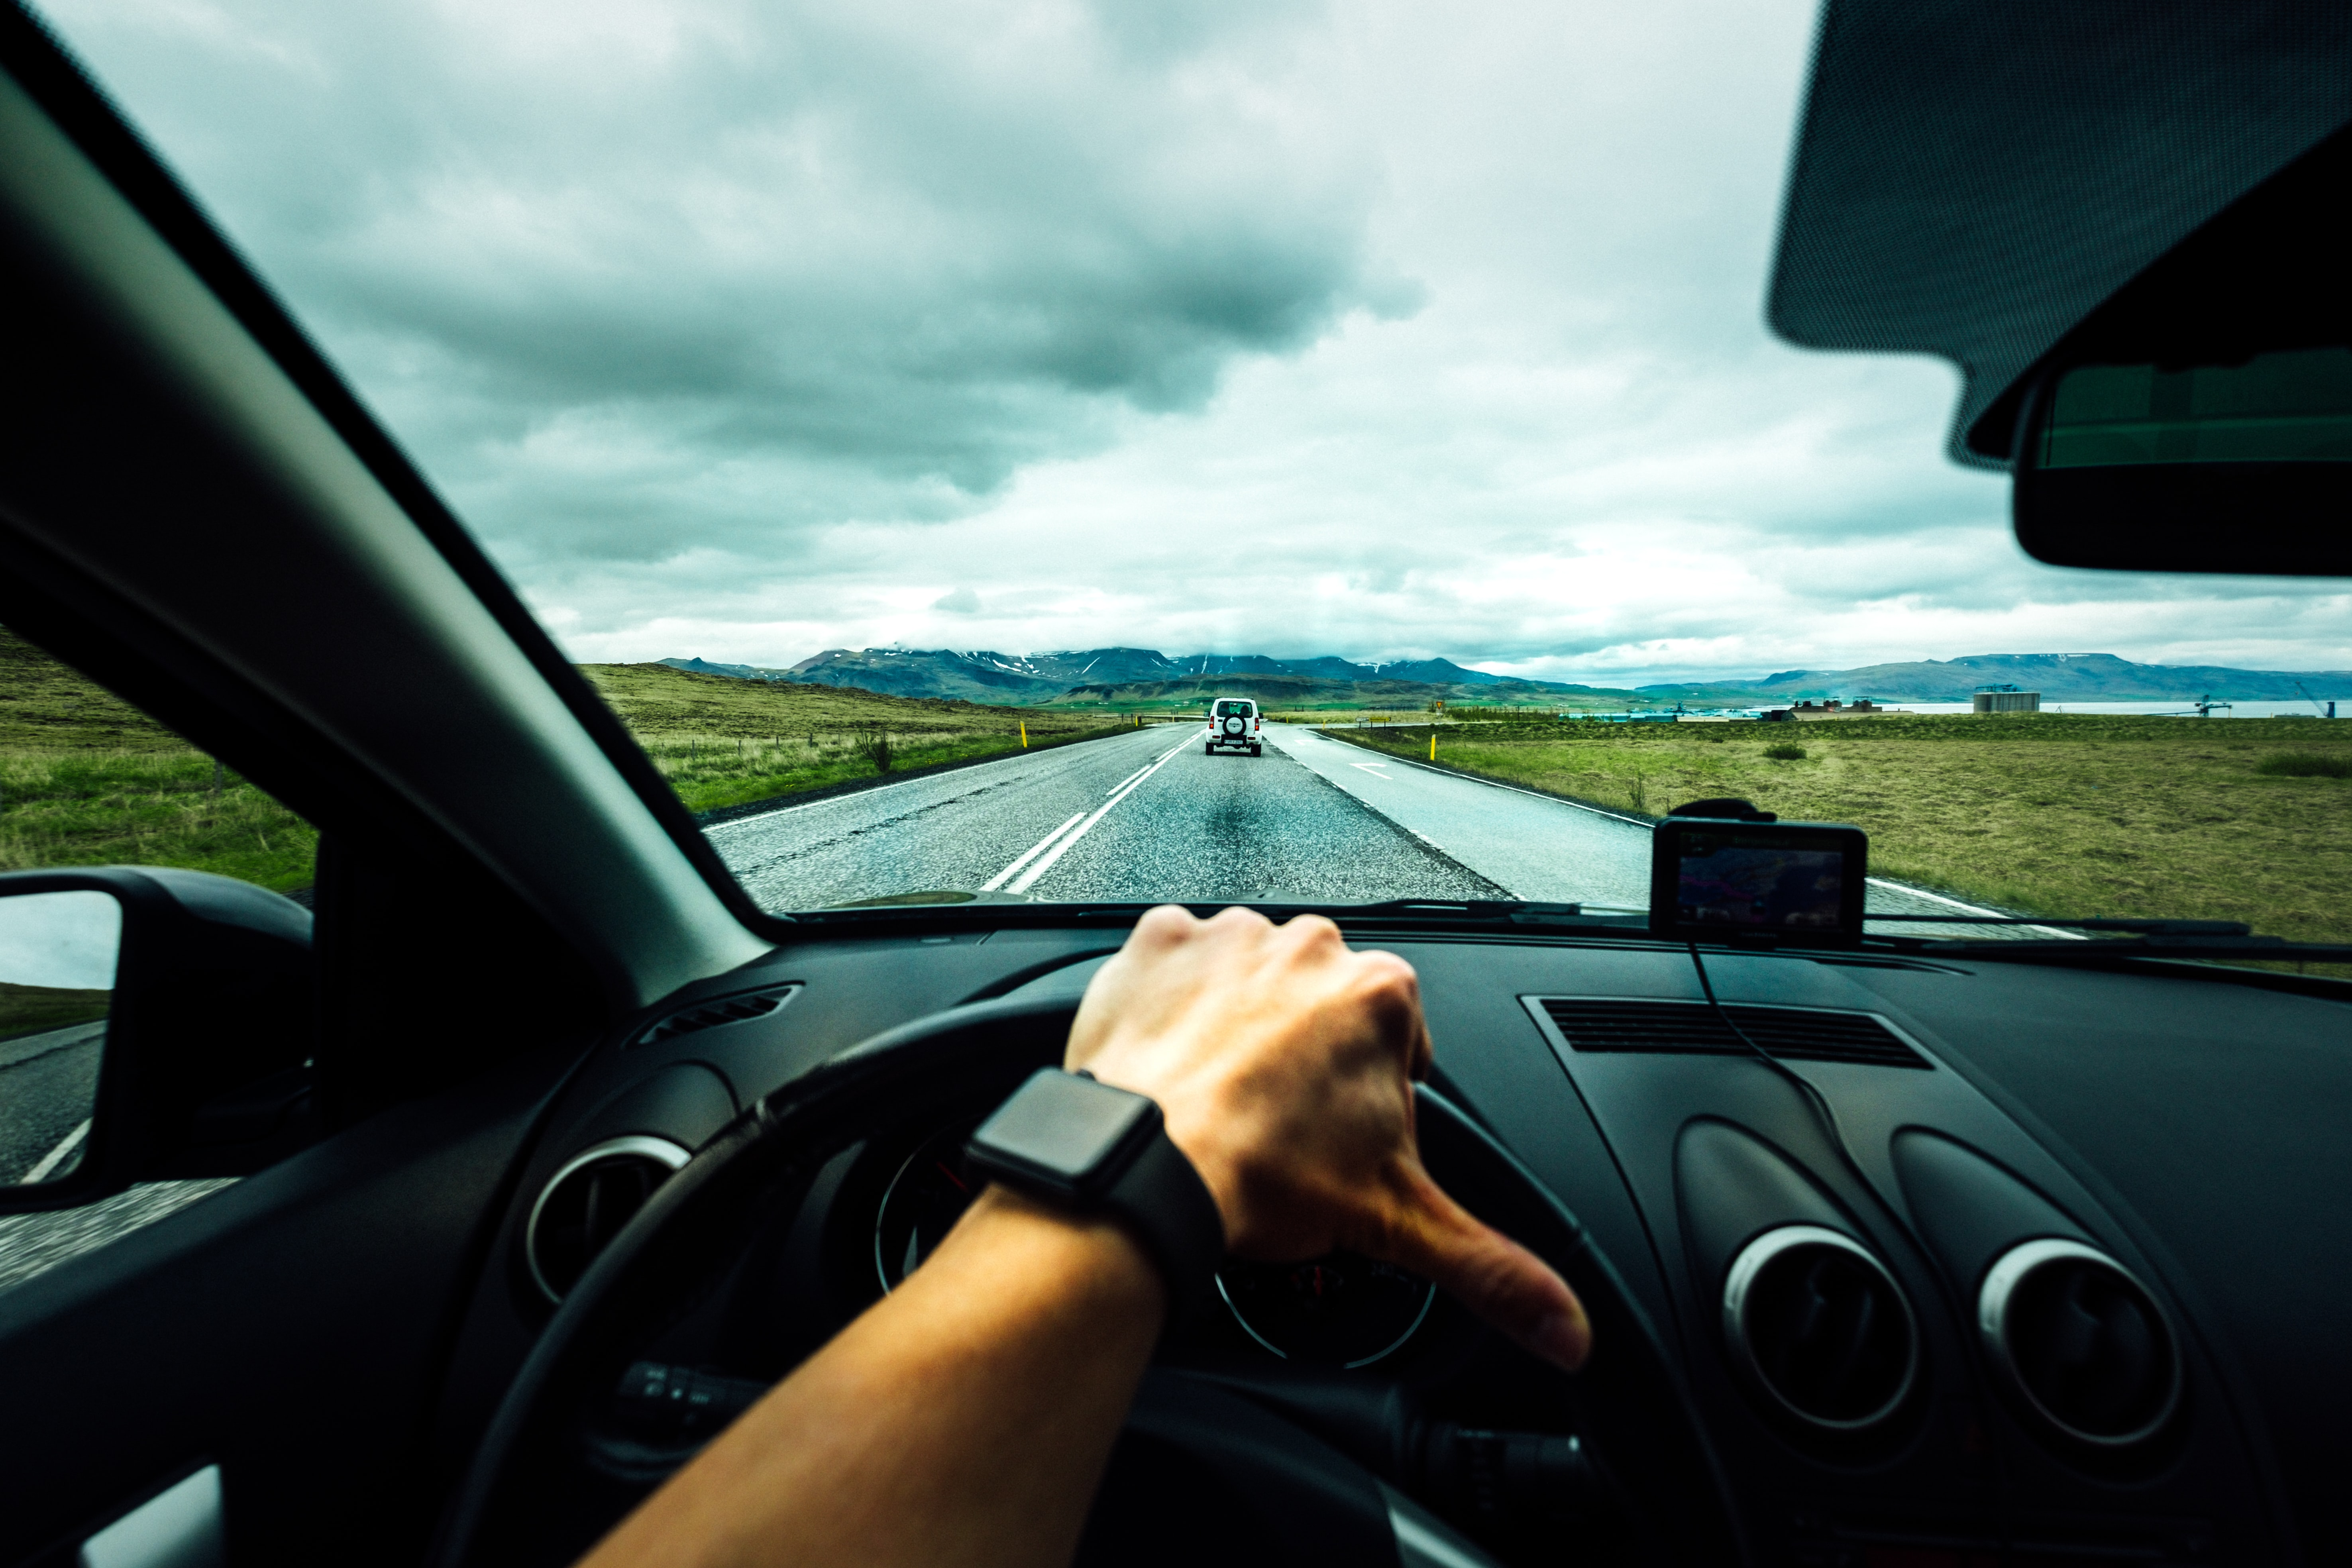 A hand on the steering wheel of a car driving down a long road towards mountains. Courtesy of Tim Foster on Unsplash.